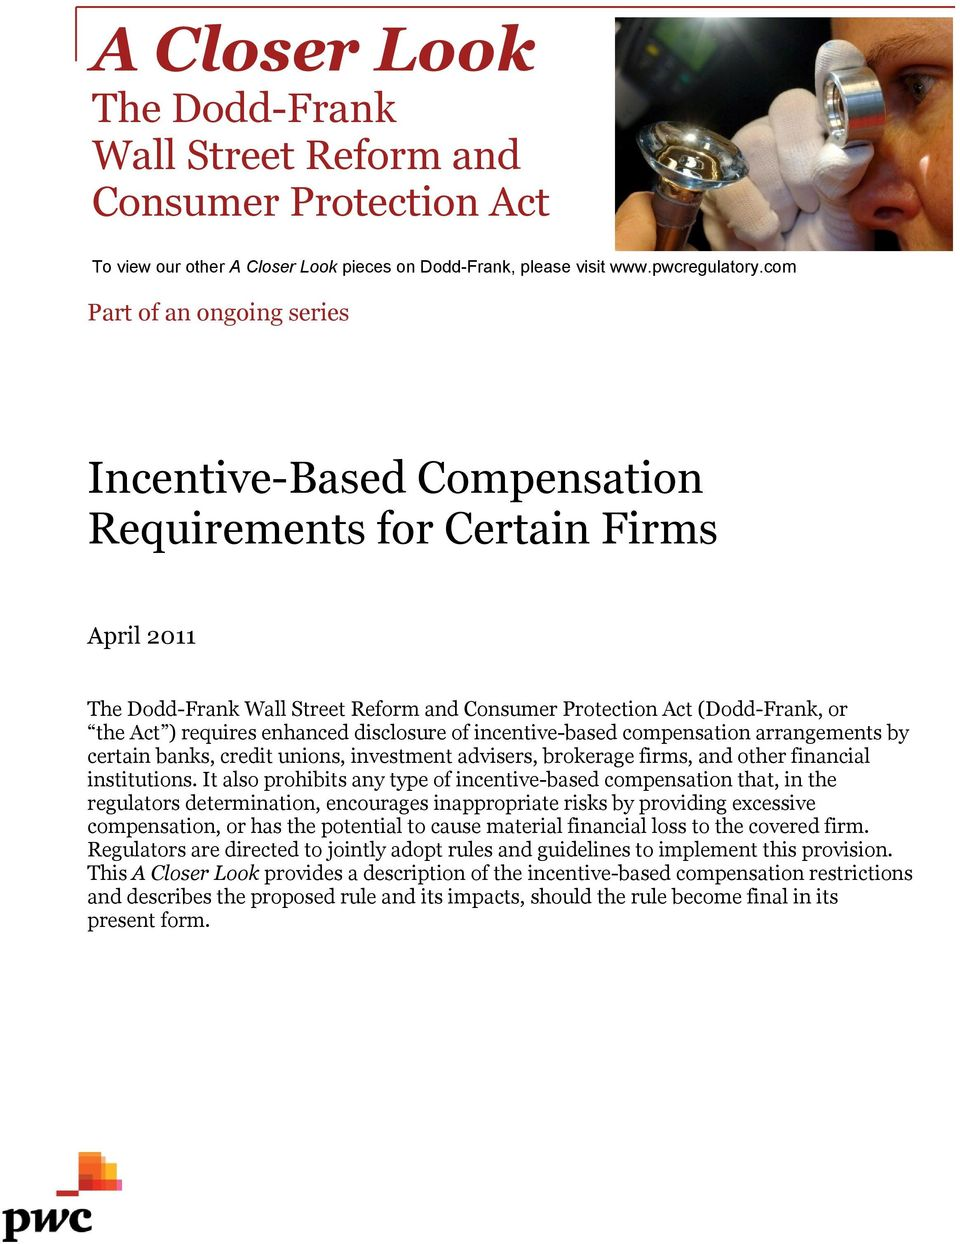 enhanced disclosure of incentive-based compensation arrangements by certain banks, credit unions, investment advisers, brokerage firms, and other financial institutions.